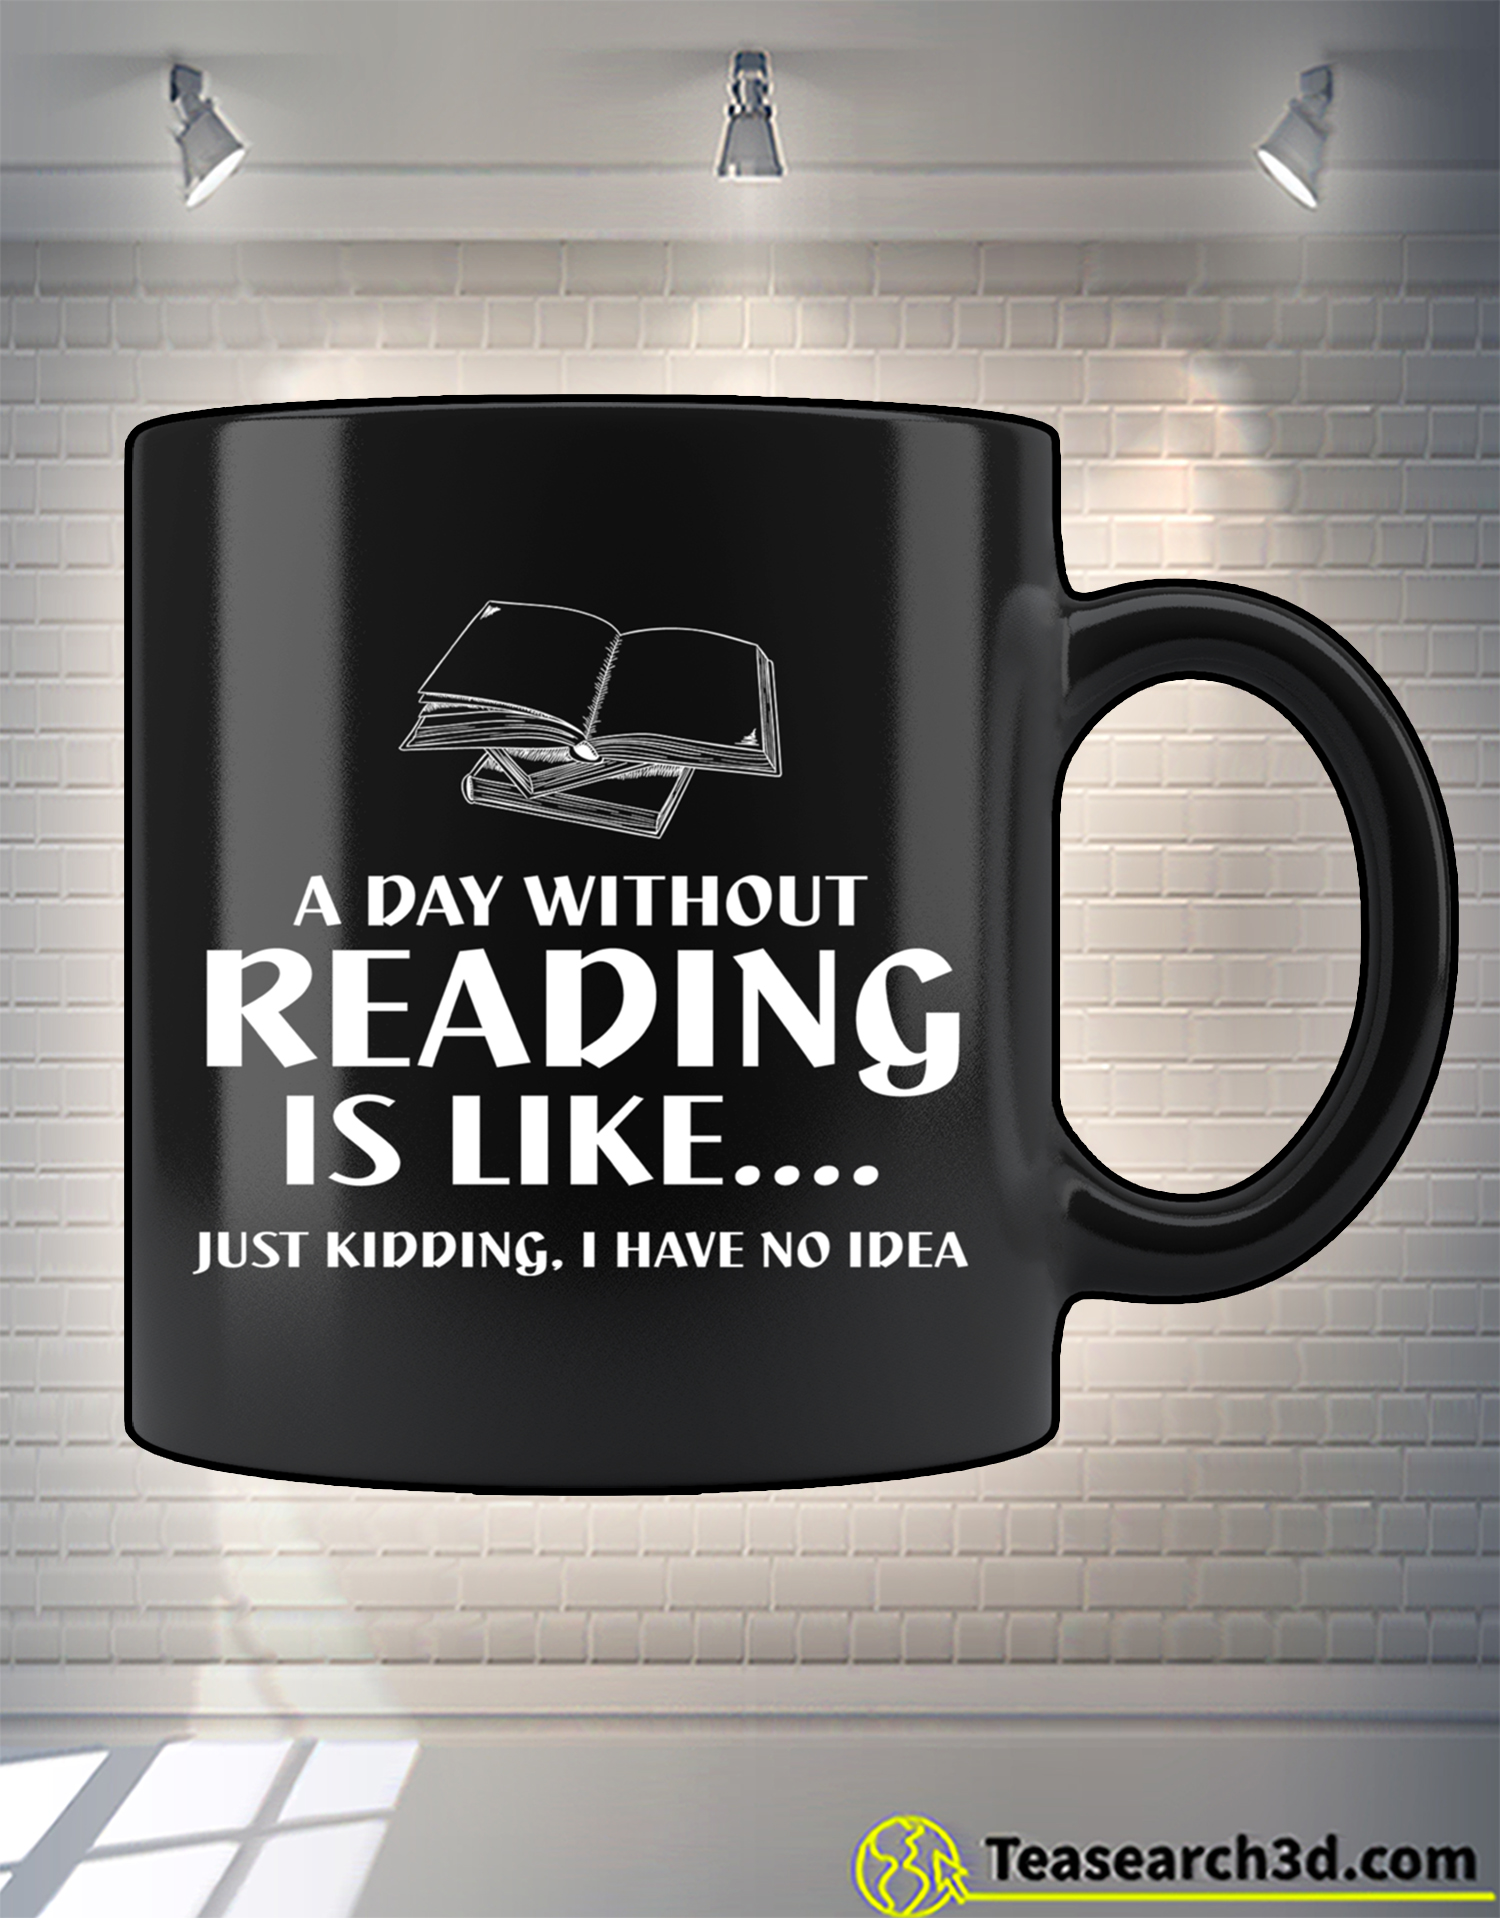 A day without reading is like just kidding I have no idea mug